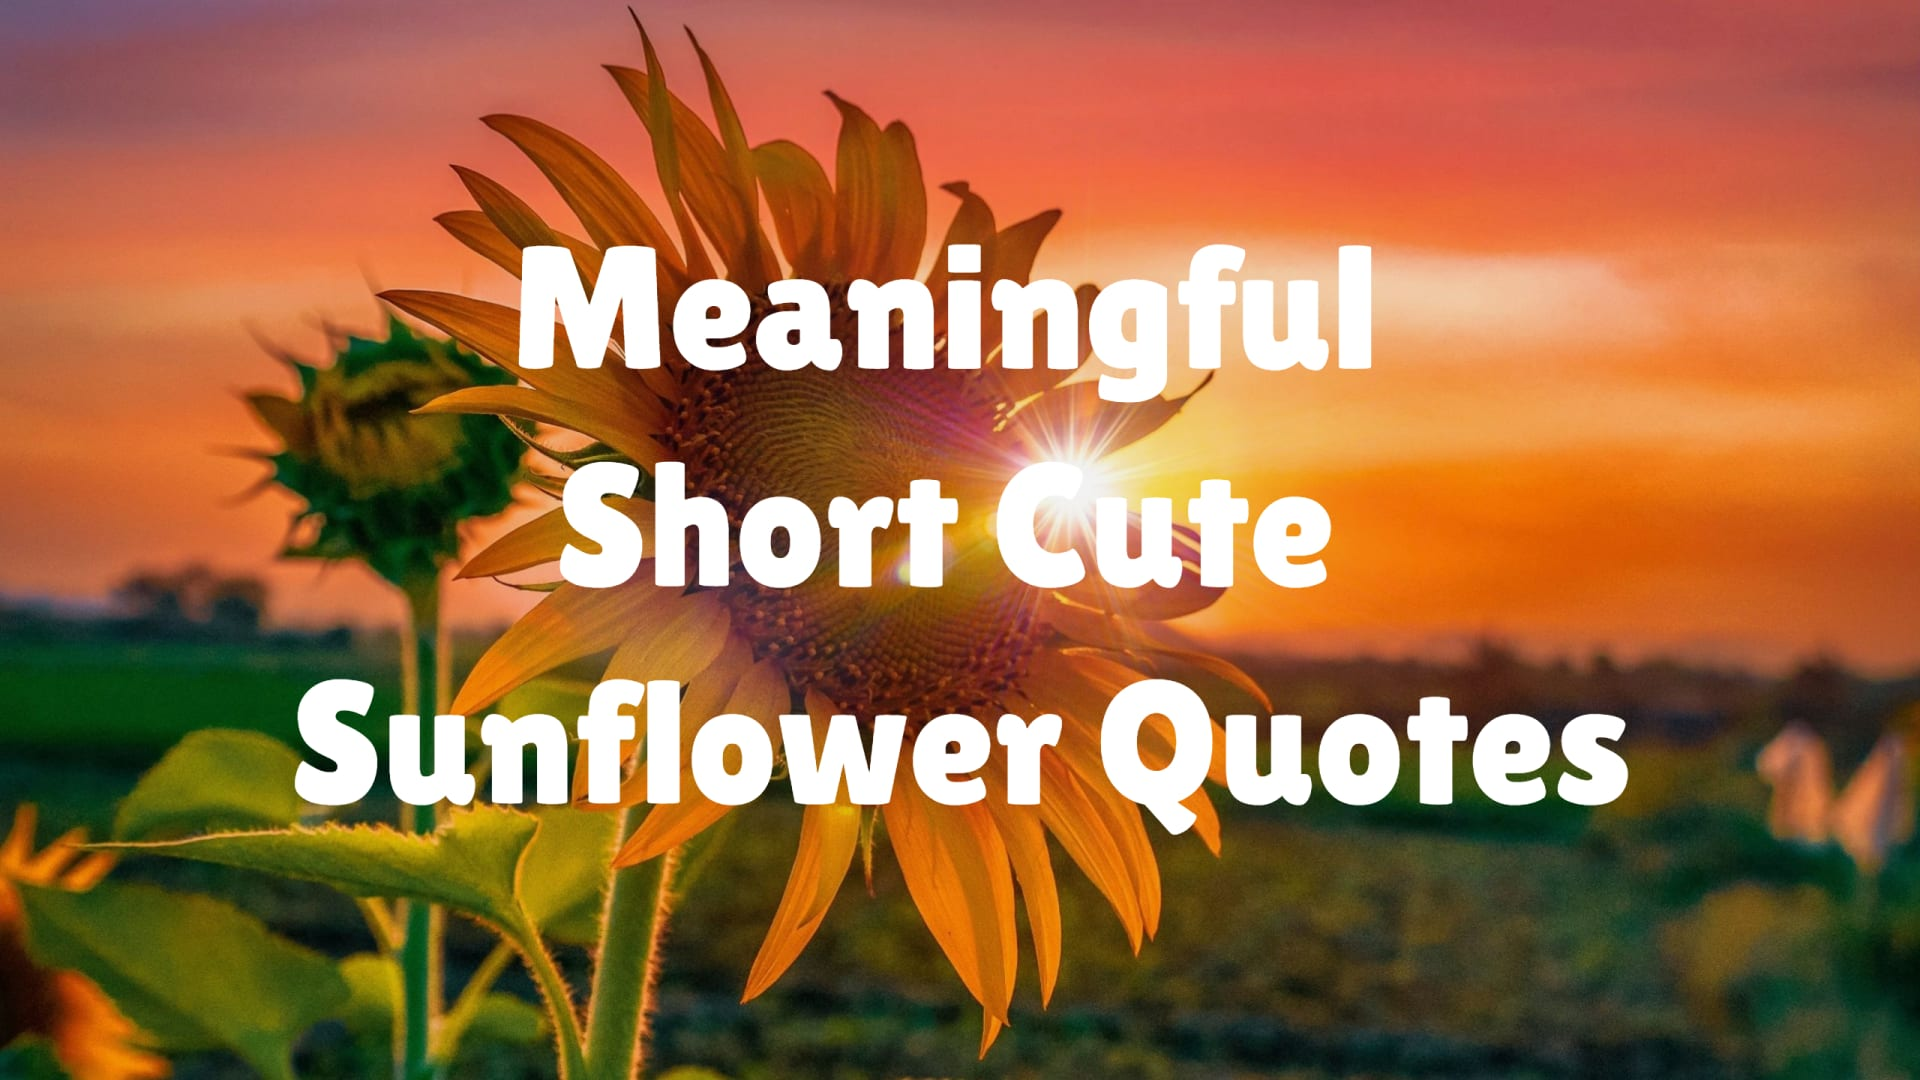 Meaningful Short Cute Sunflower Quotes